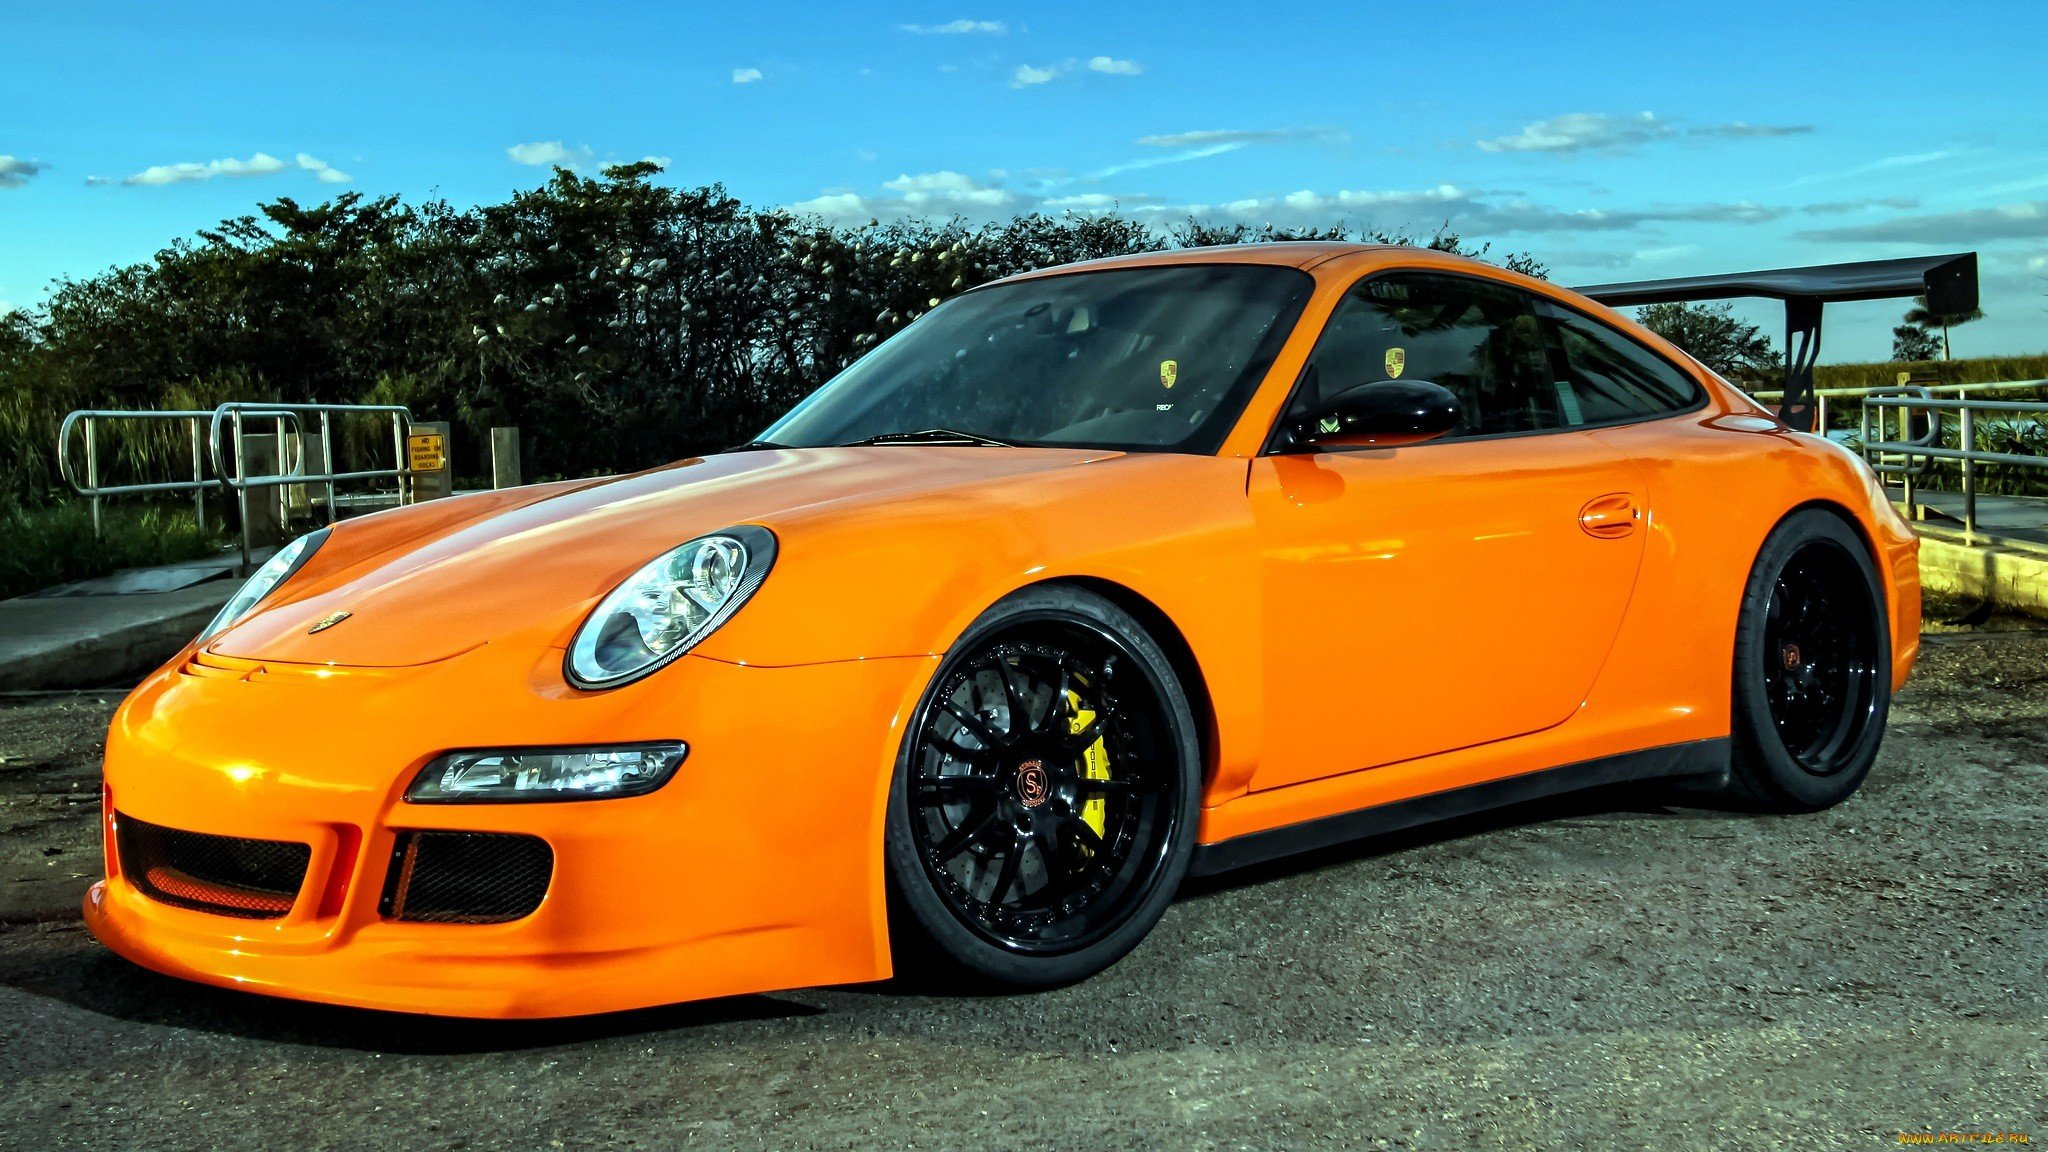 Porsche 911 Gt3 Tuning Orange Sportcar Wallpaper  2048x1152 43247 WallpaperUP